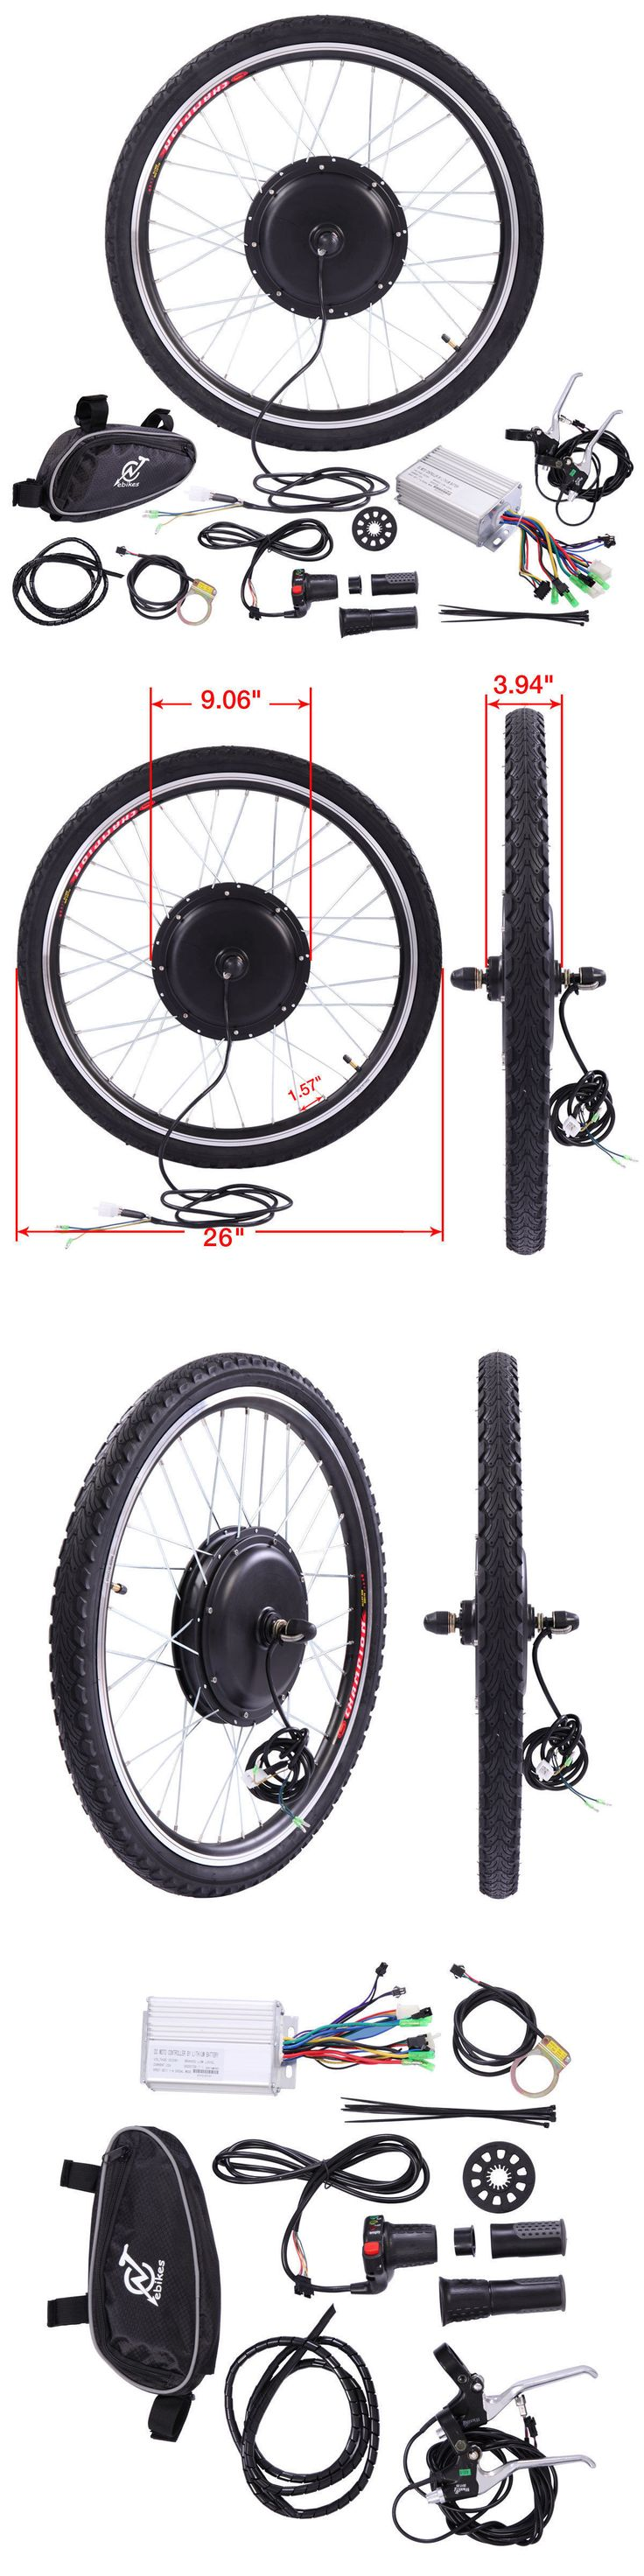 Electric Bicycles 74469: 36V Front Wheel Electric Bicycle Motor Conversion Hub Kit 500W 26 Ebike Cycling -> BUY IT NOW ONLY: $127.99 on eBay!